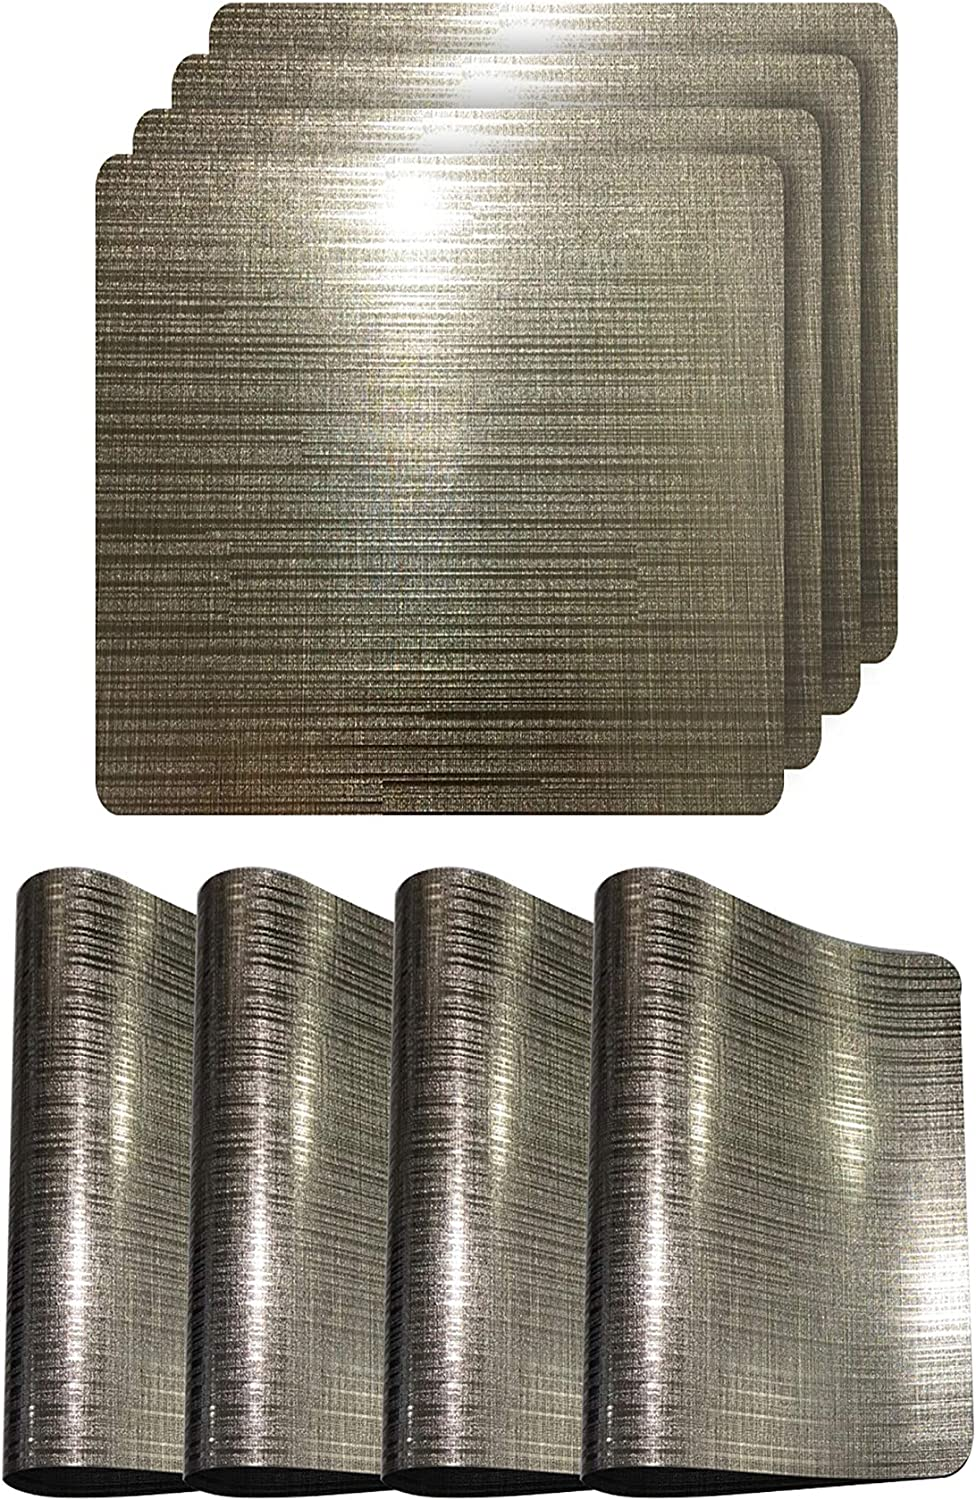 Dainty Home Reversible Emery Smooth Metallic Stripes Dining Table Indoor Outdoor Placemats Set of 4, 15 inch Square, Linear Striations Coffee